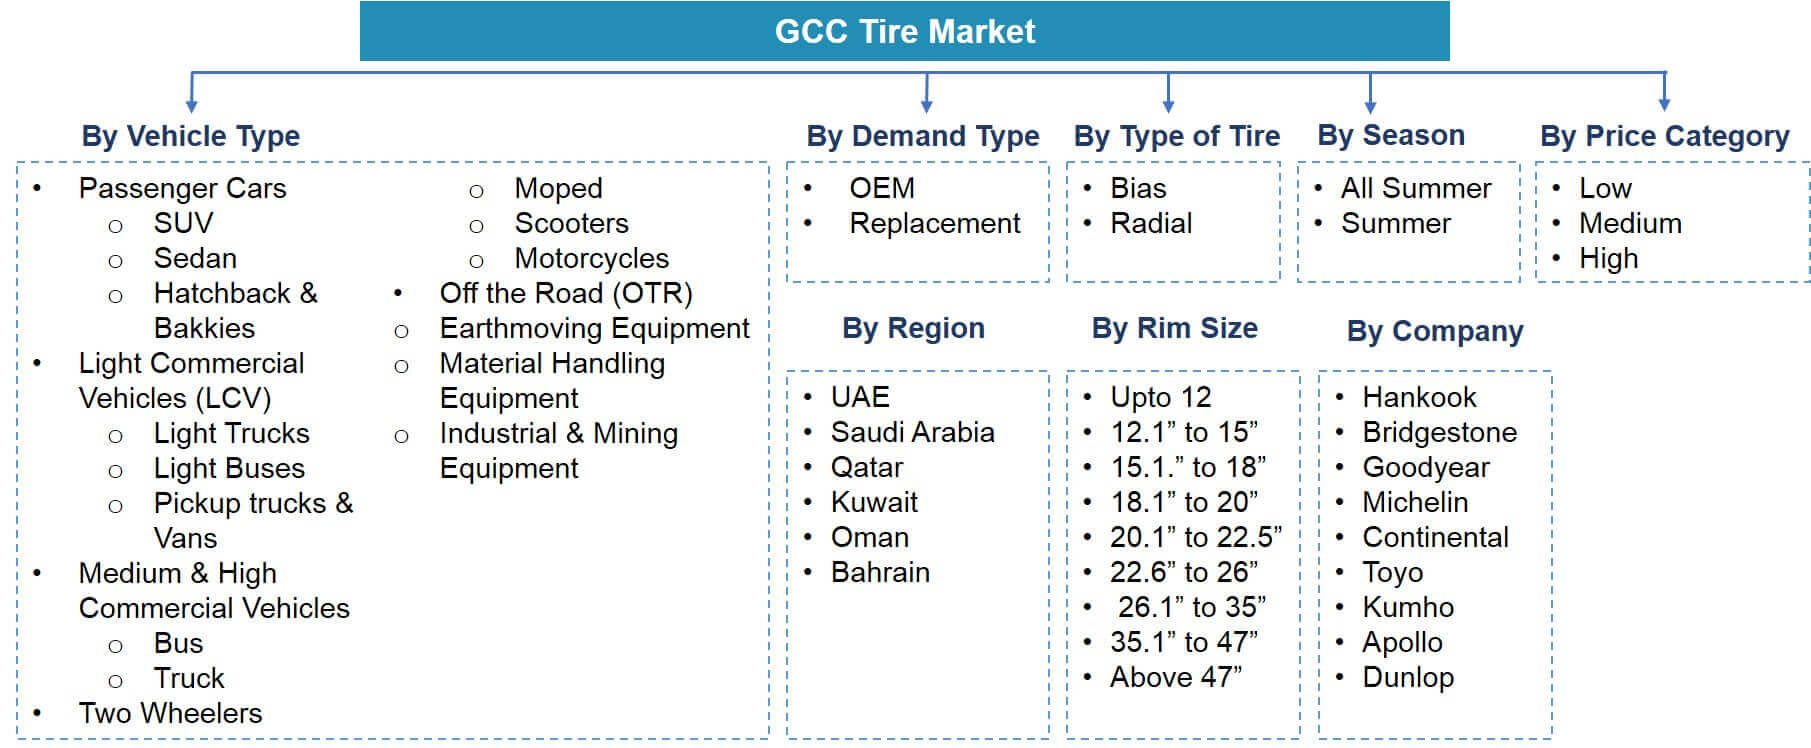 GCC Tire Market Segmentation